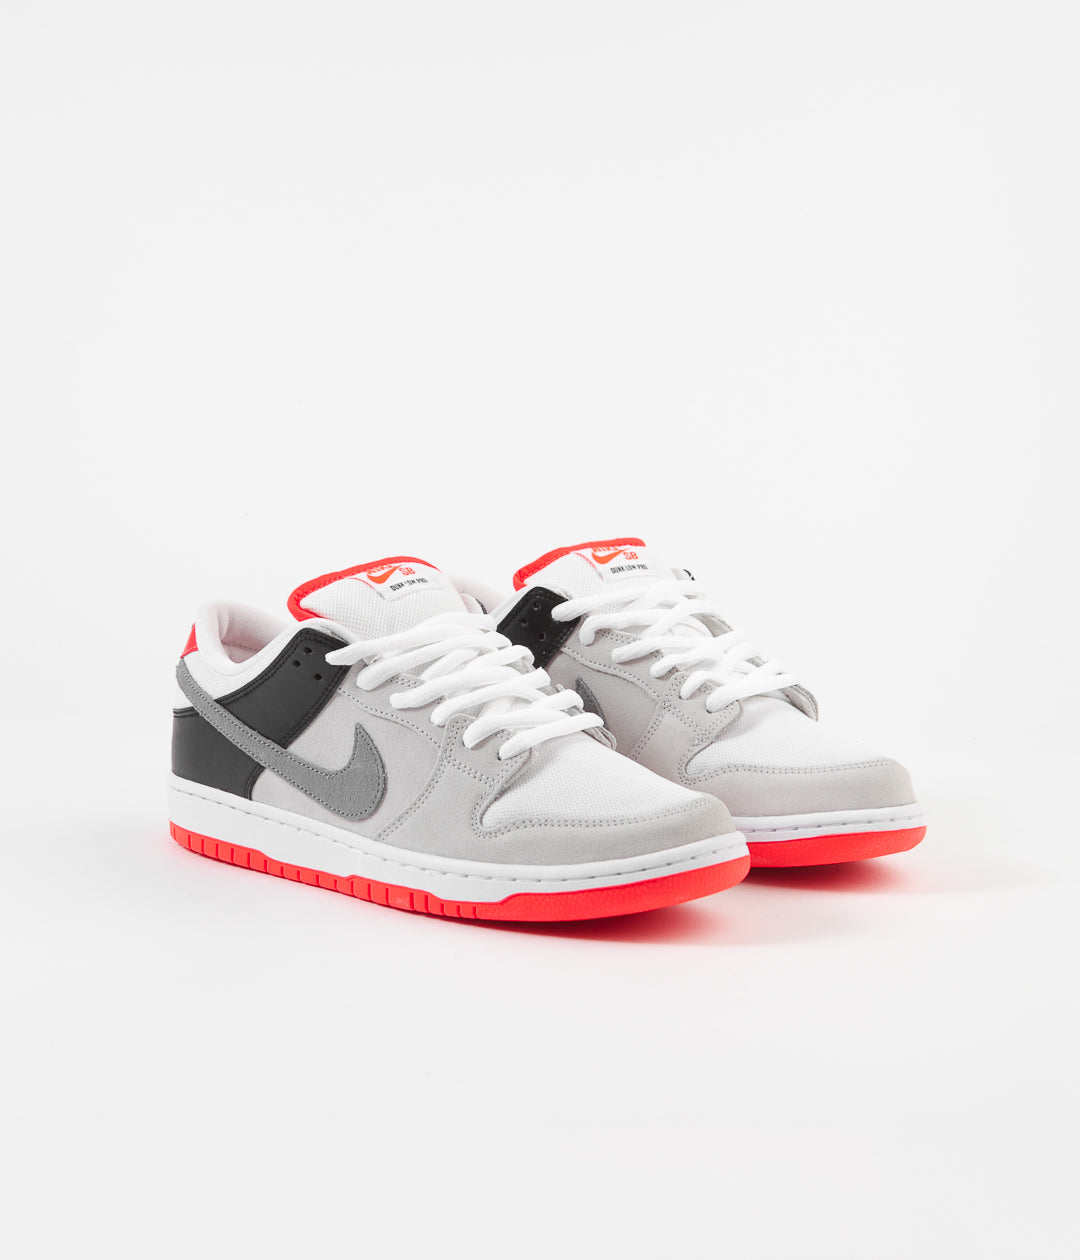 Nike SB Orange Label Dunk Low Pro Shoes - Neutral Grey / Cool Grey - Black - Infrared